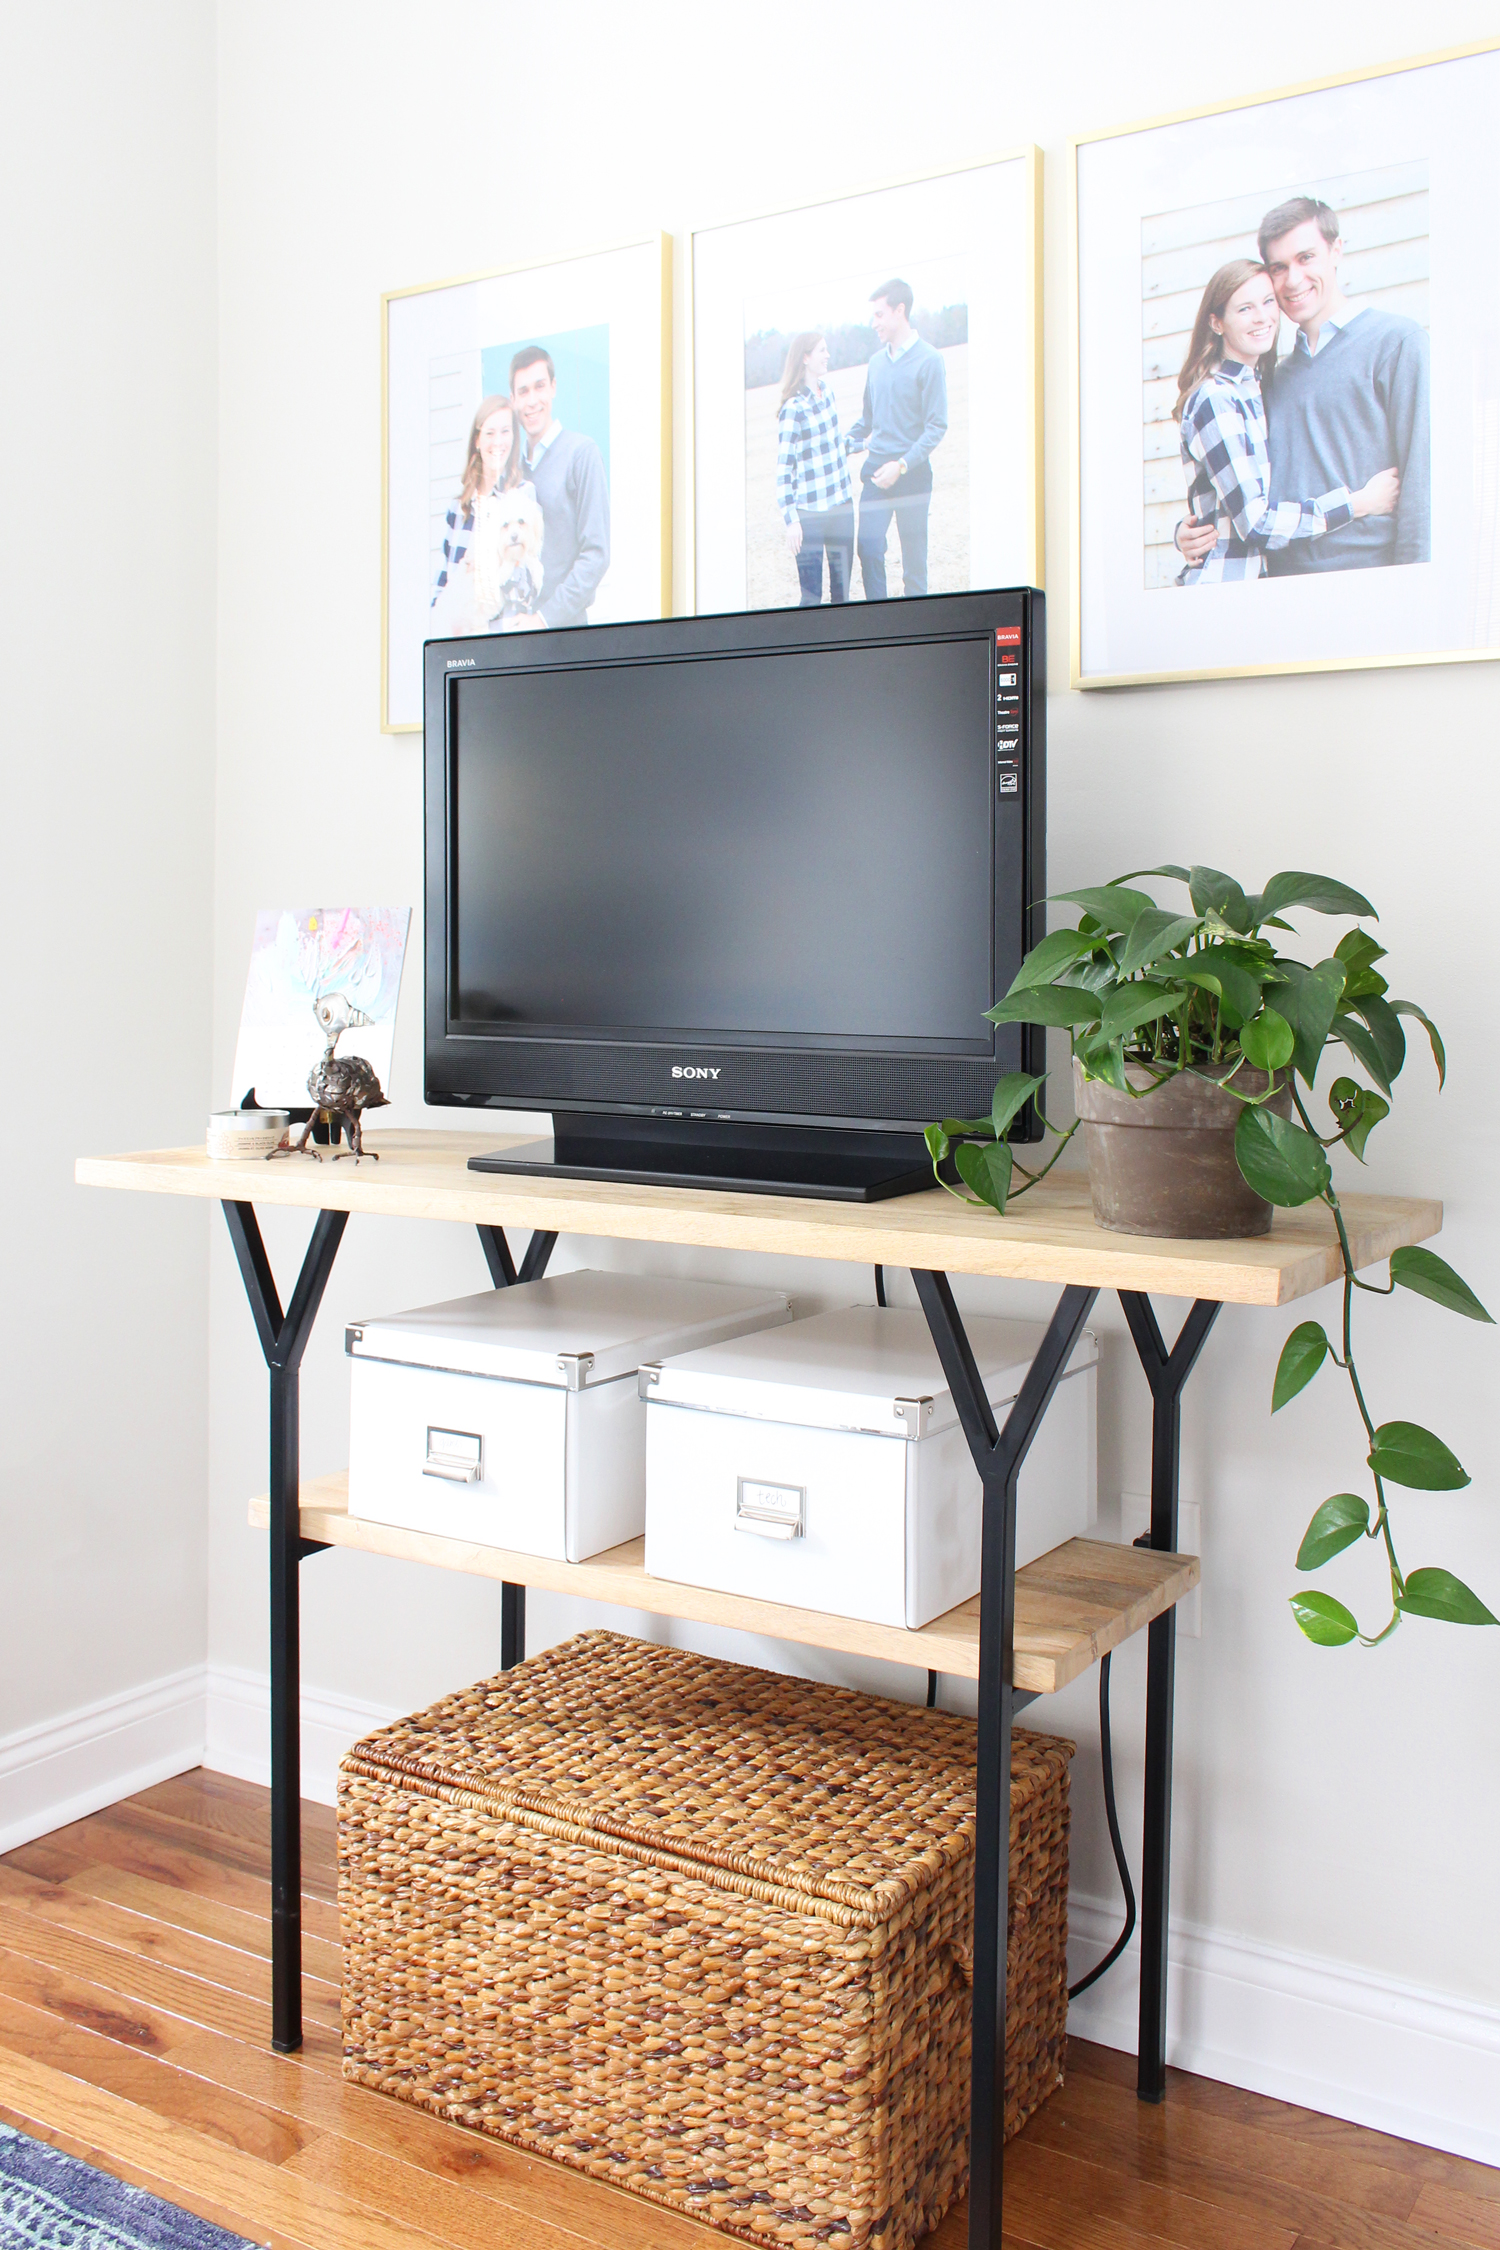 Styling a console table as a media stand in Mix & Match Design Company's home office.